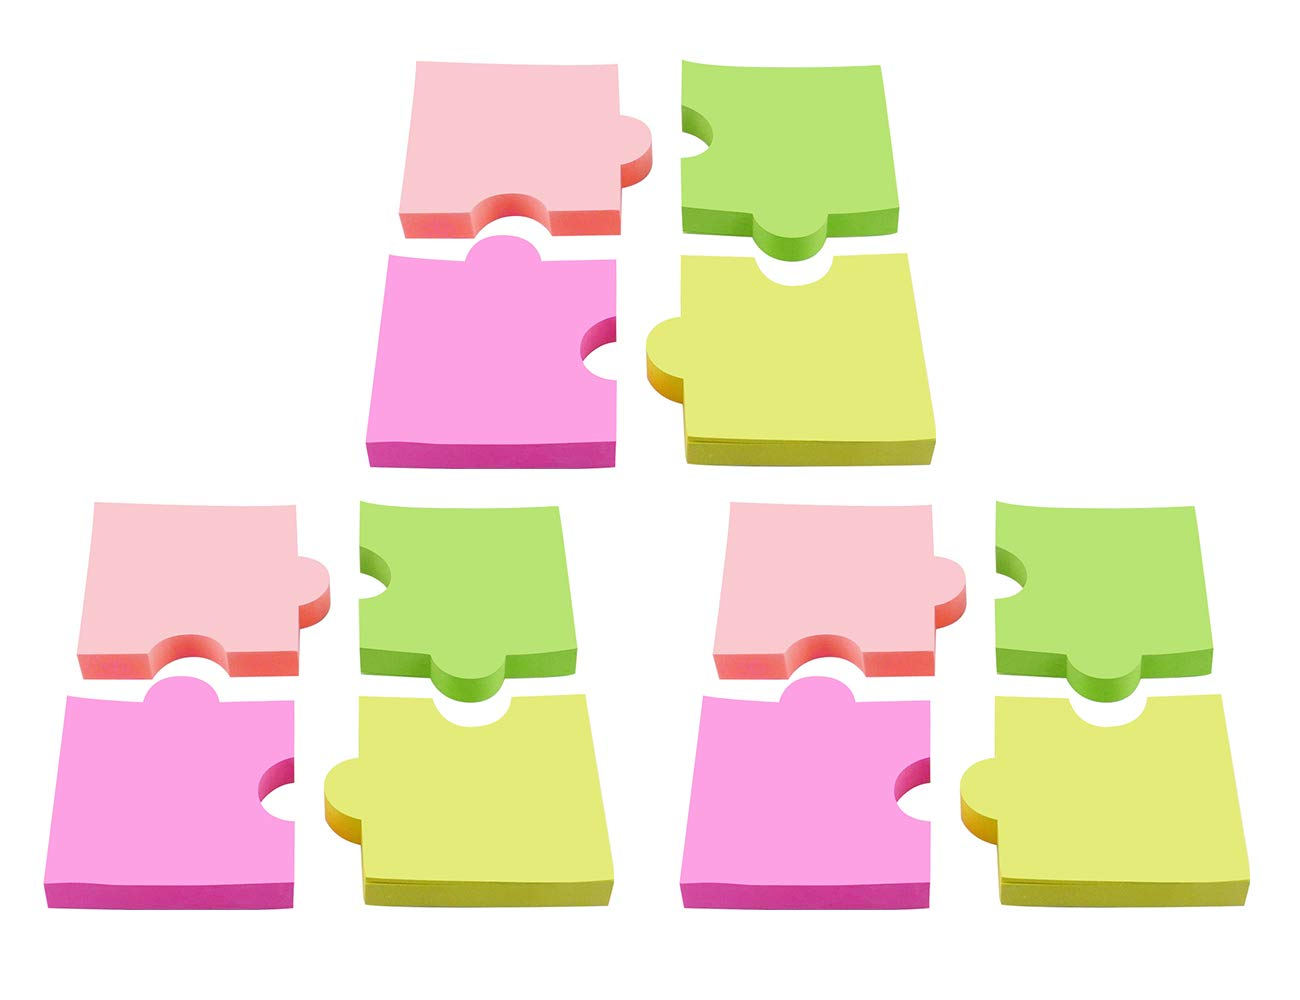 4A Shapes Sticky Notes,Puzzle,2 7/8 x 2 4/7 Inches,Neon Assorted,Self-Stick Notes,100 Sheets/Pad,4 Pads/Pack,3 Packs,4A 5020x3